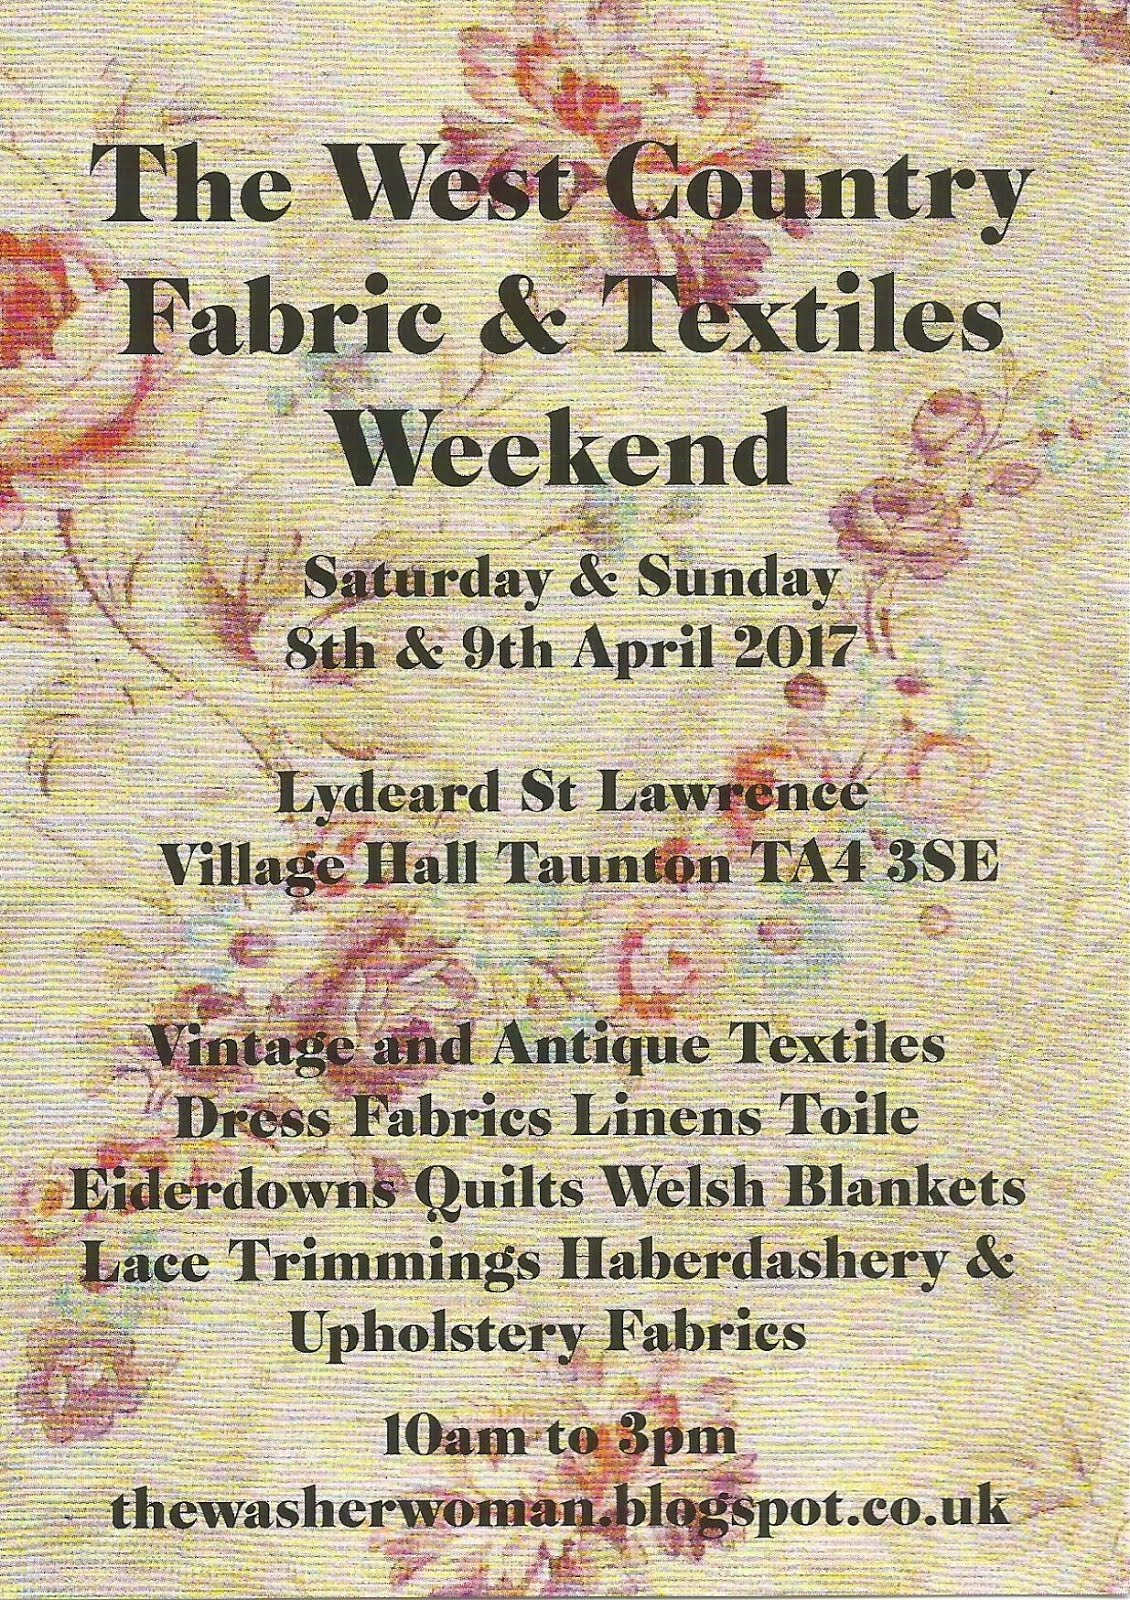 The West Country Fabric and Textiles Weekend. Lydeard St Lawrence. TA4 3SE